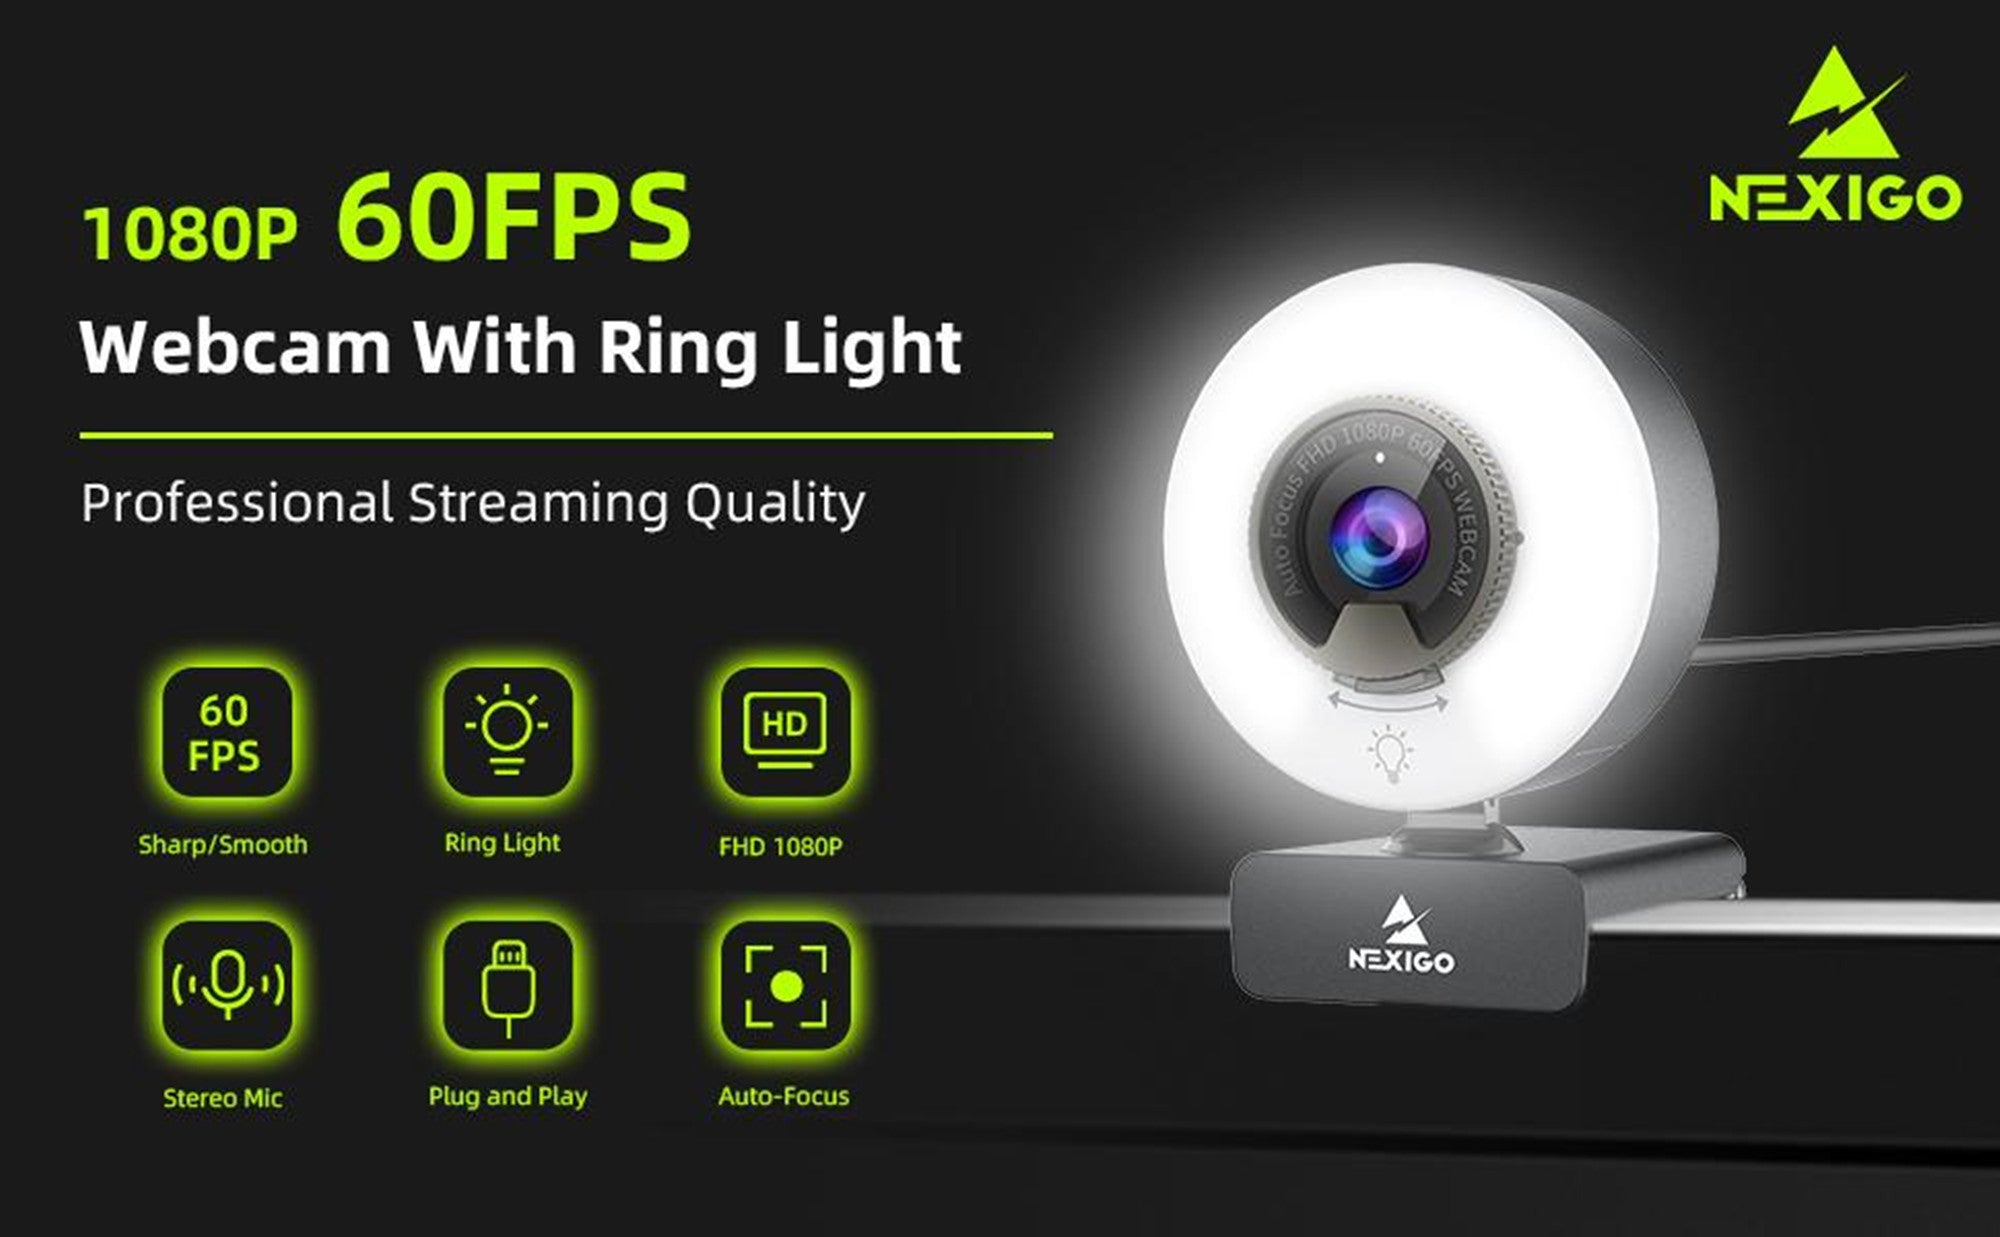 1080p 60fps webcam with ring light